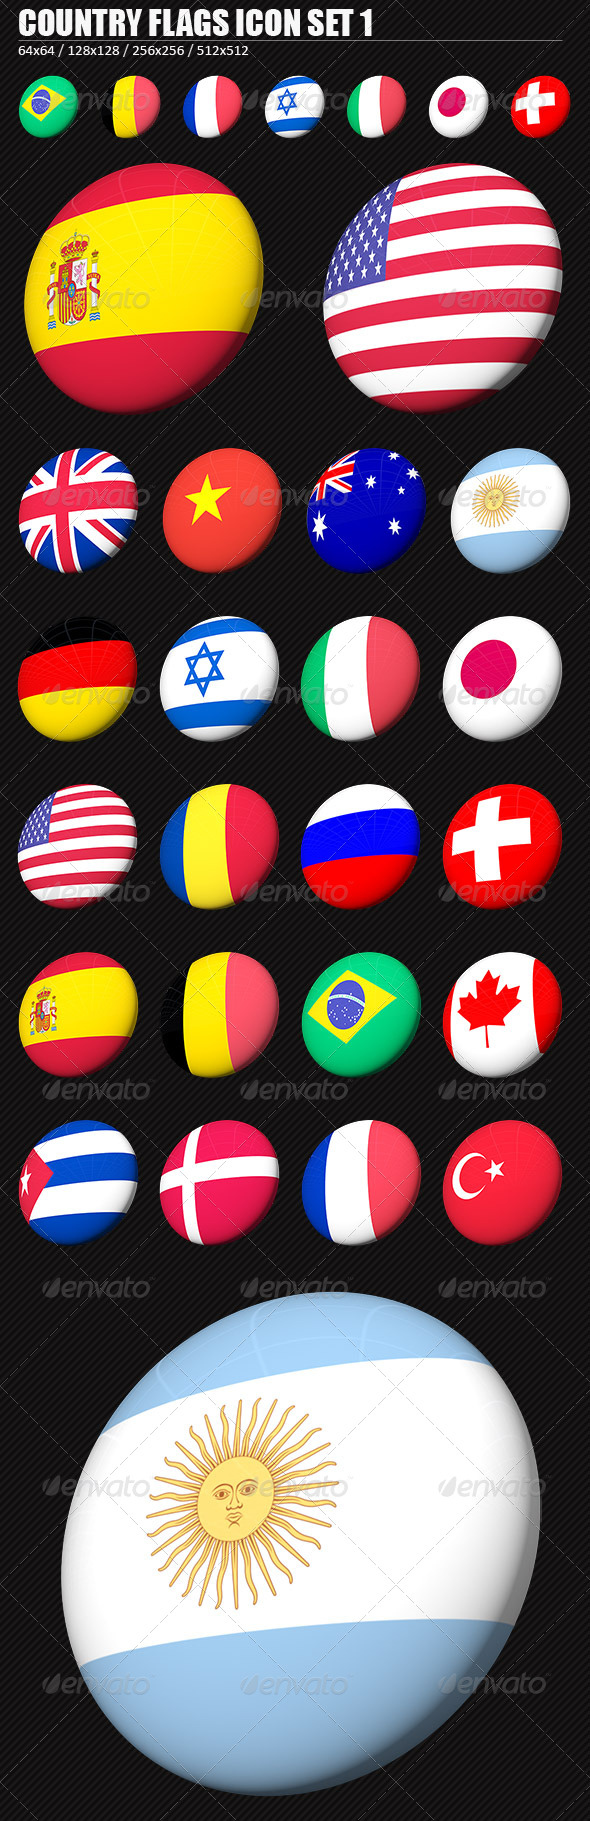 Country Flags PNG Icon Set 1 - Web Icons